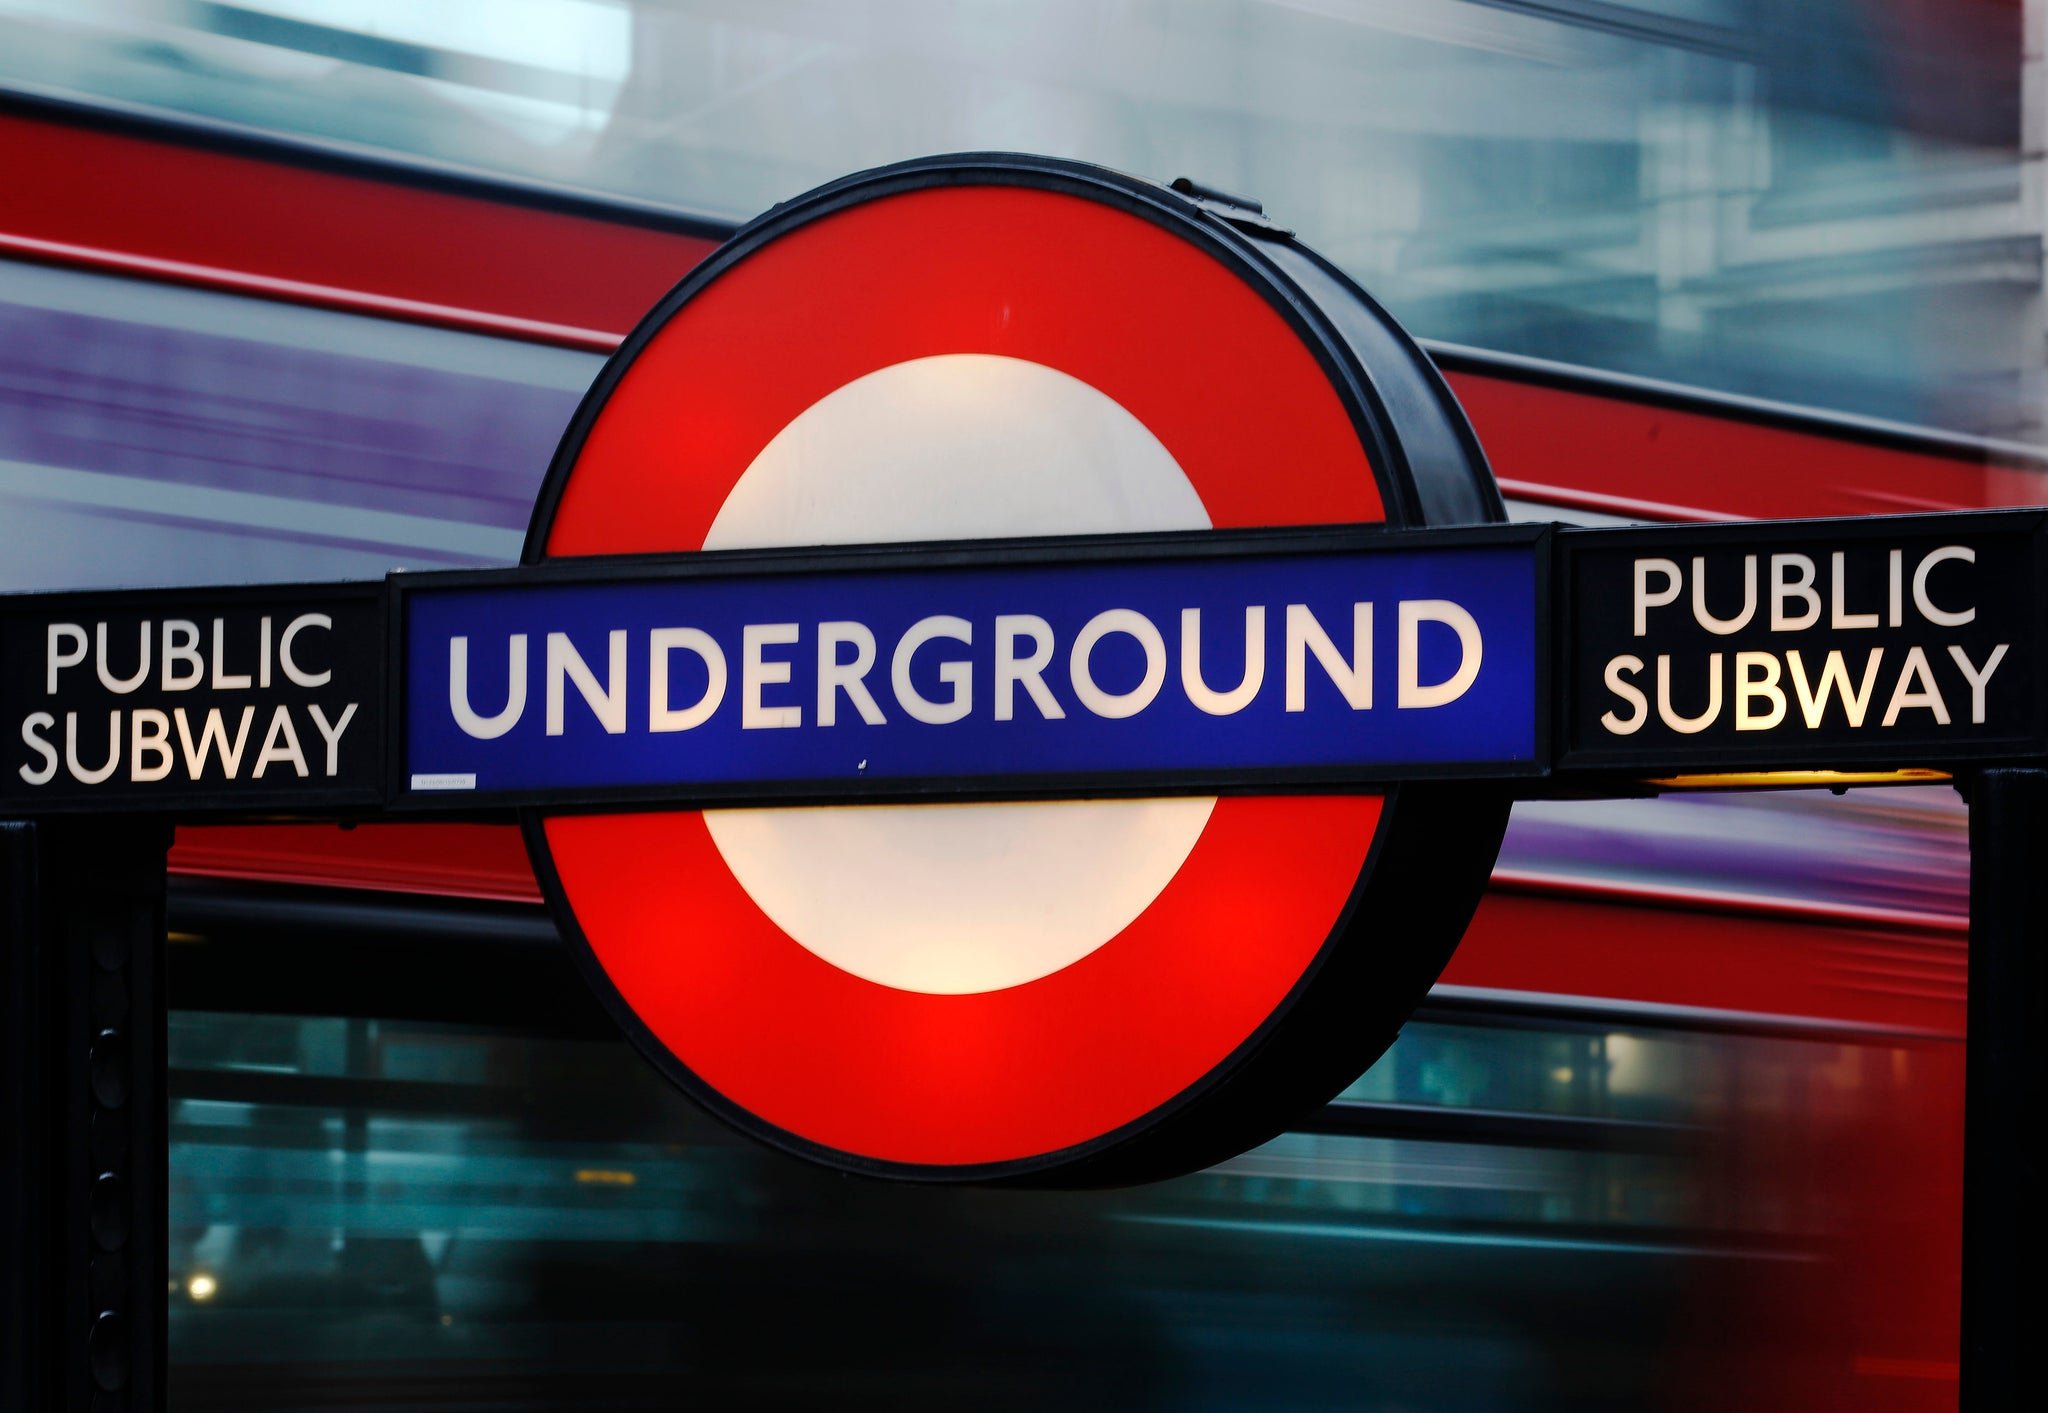 Free Tube on New Year's Eve: Everything you need to know